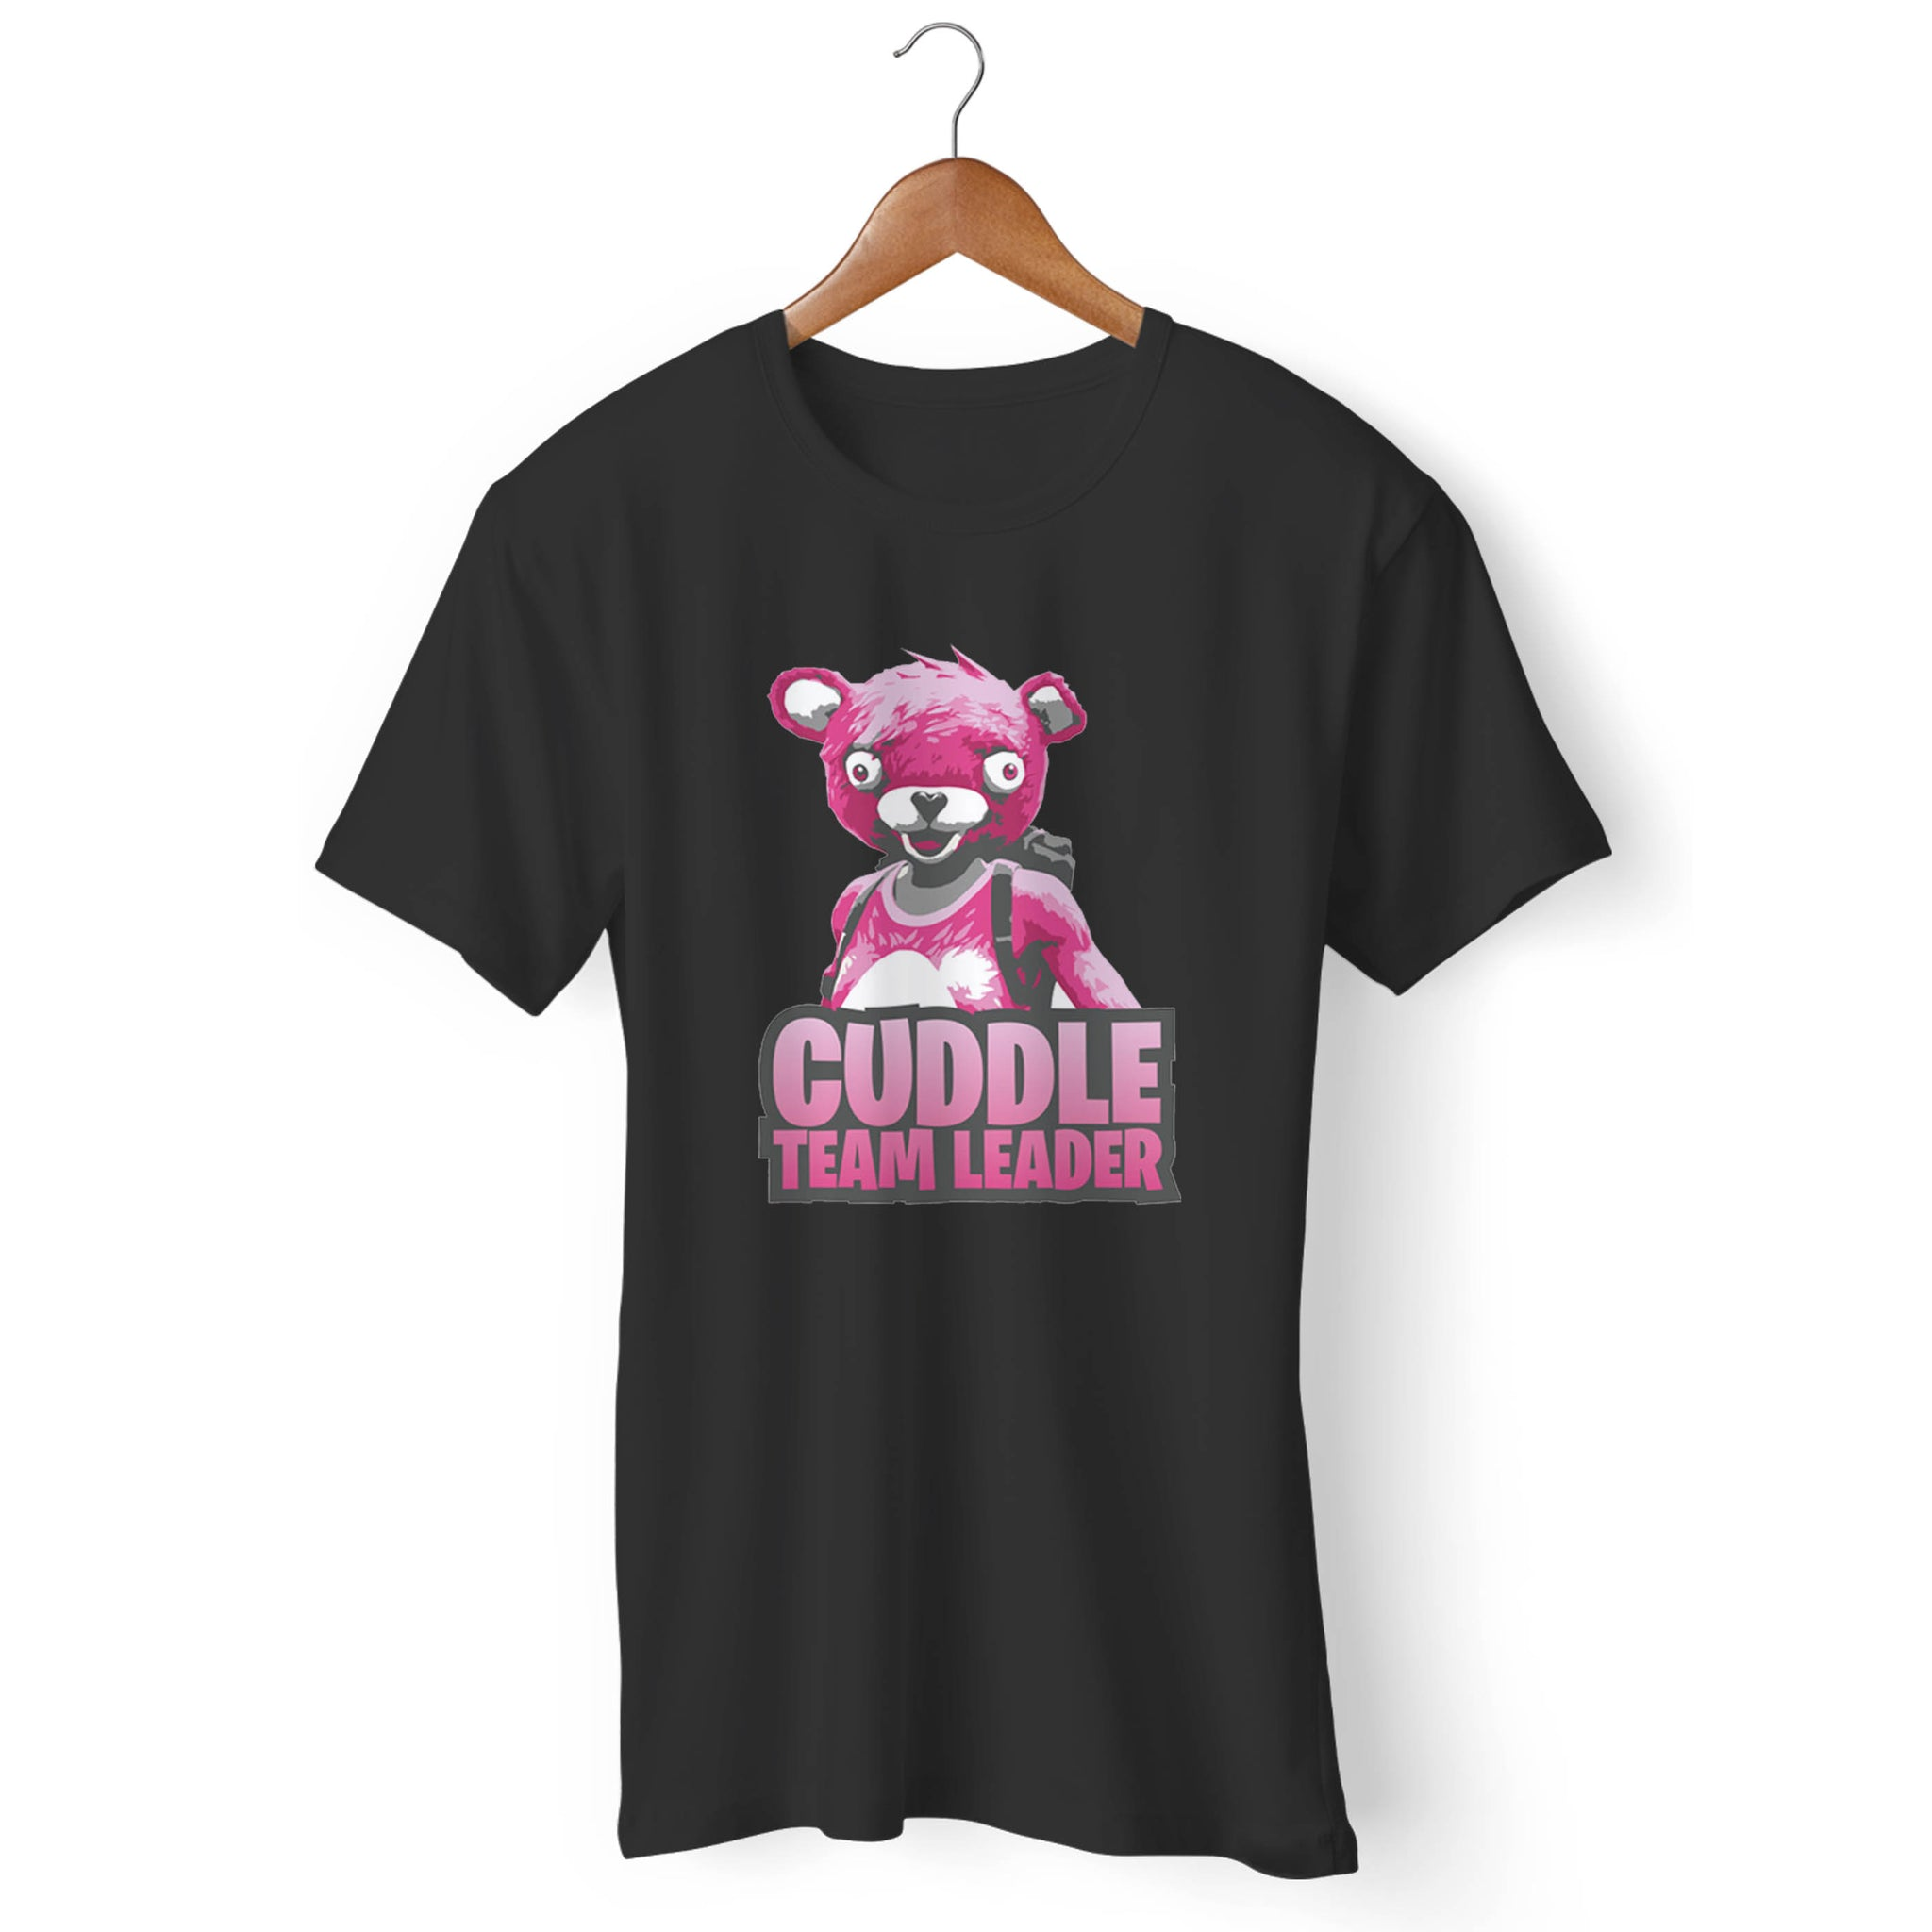 Fortnite Cuddle Team Leader Man's T-Shirt